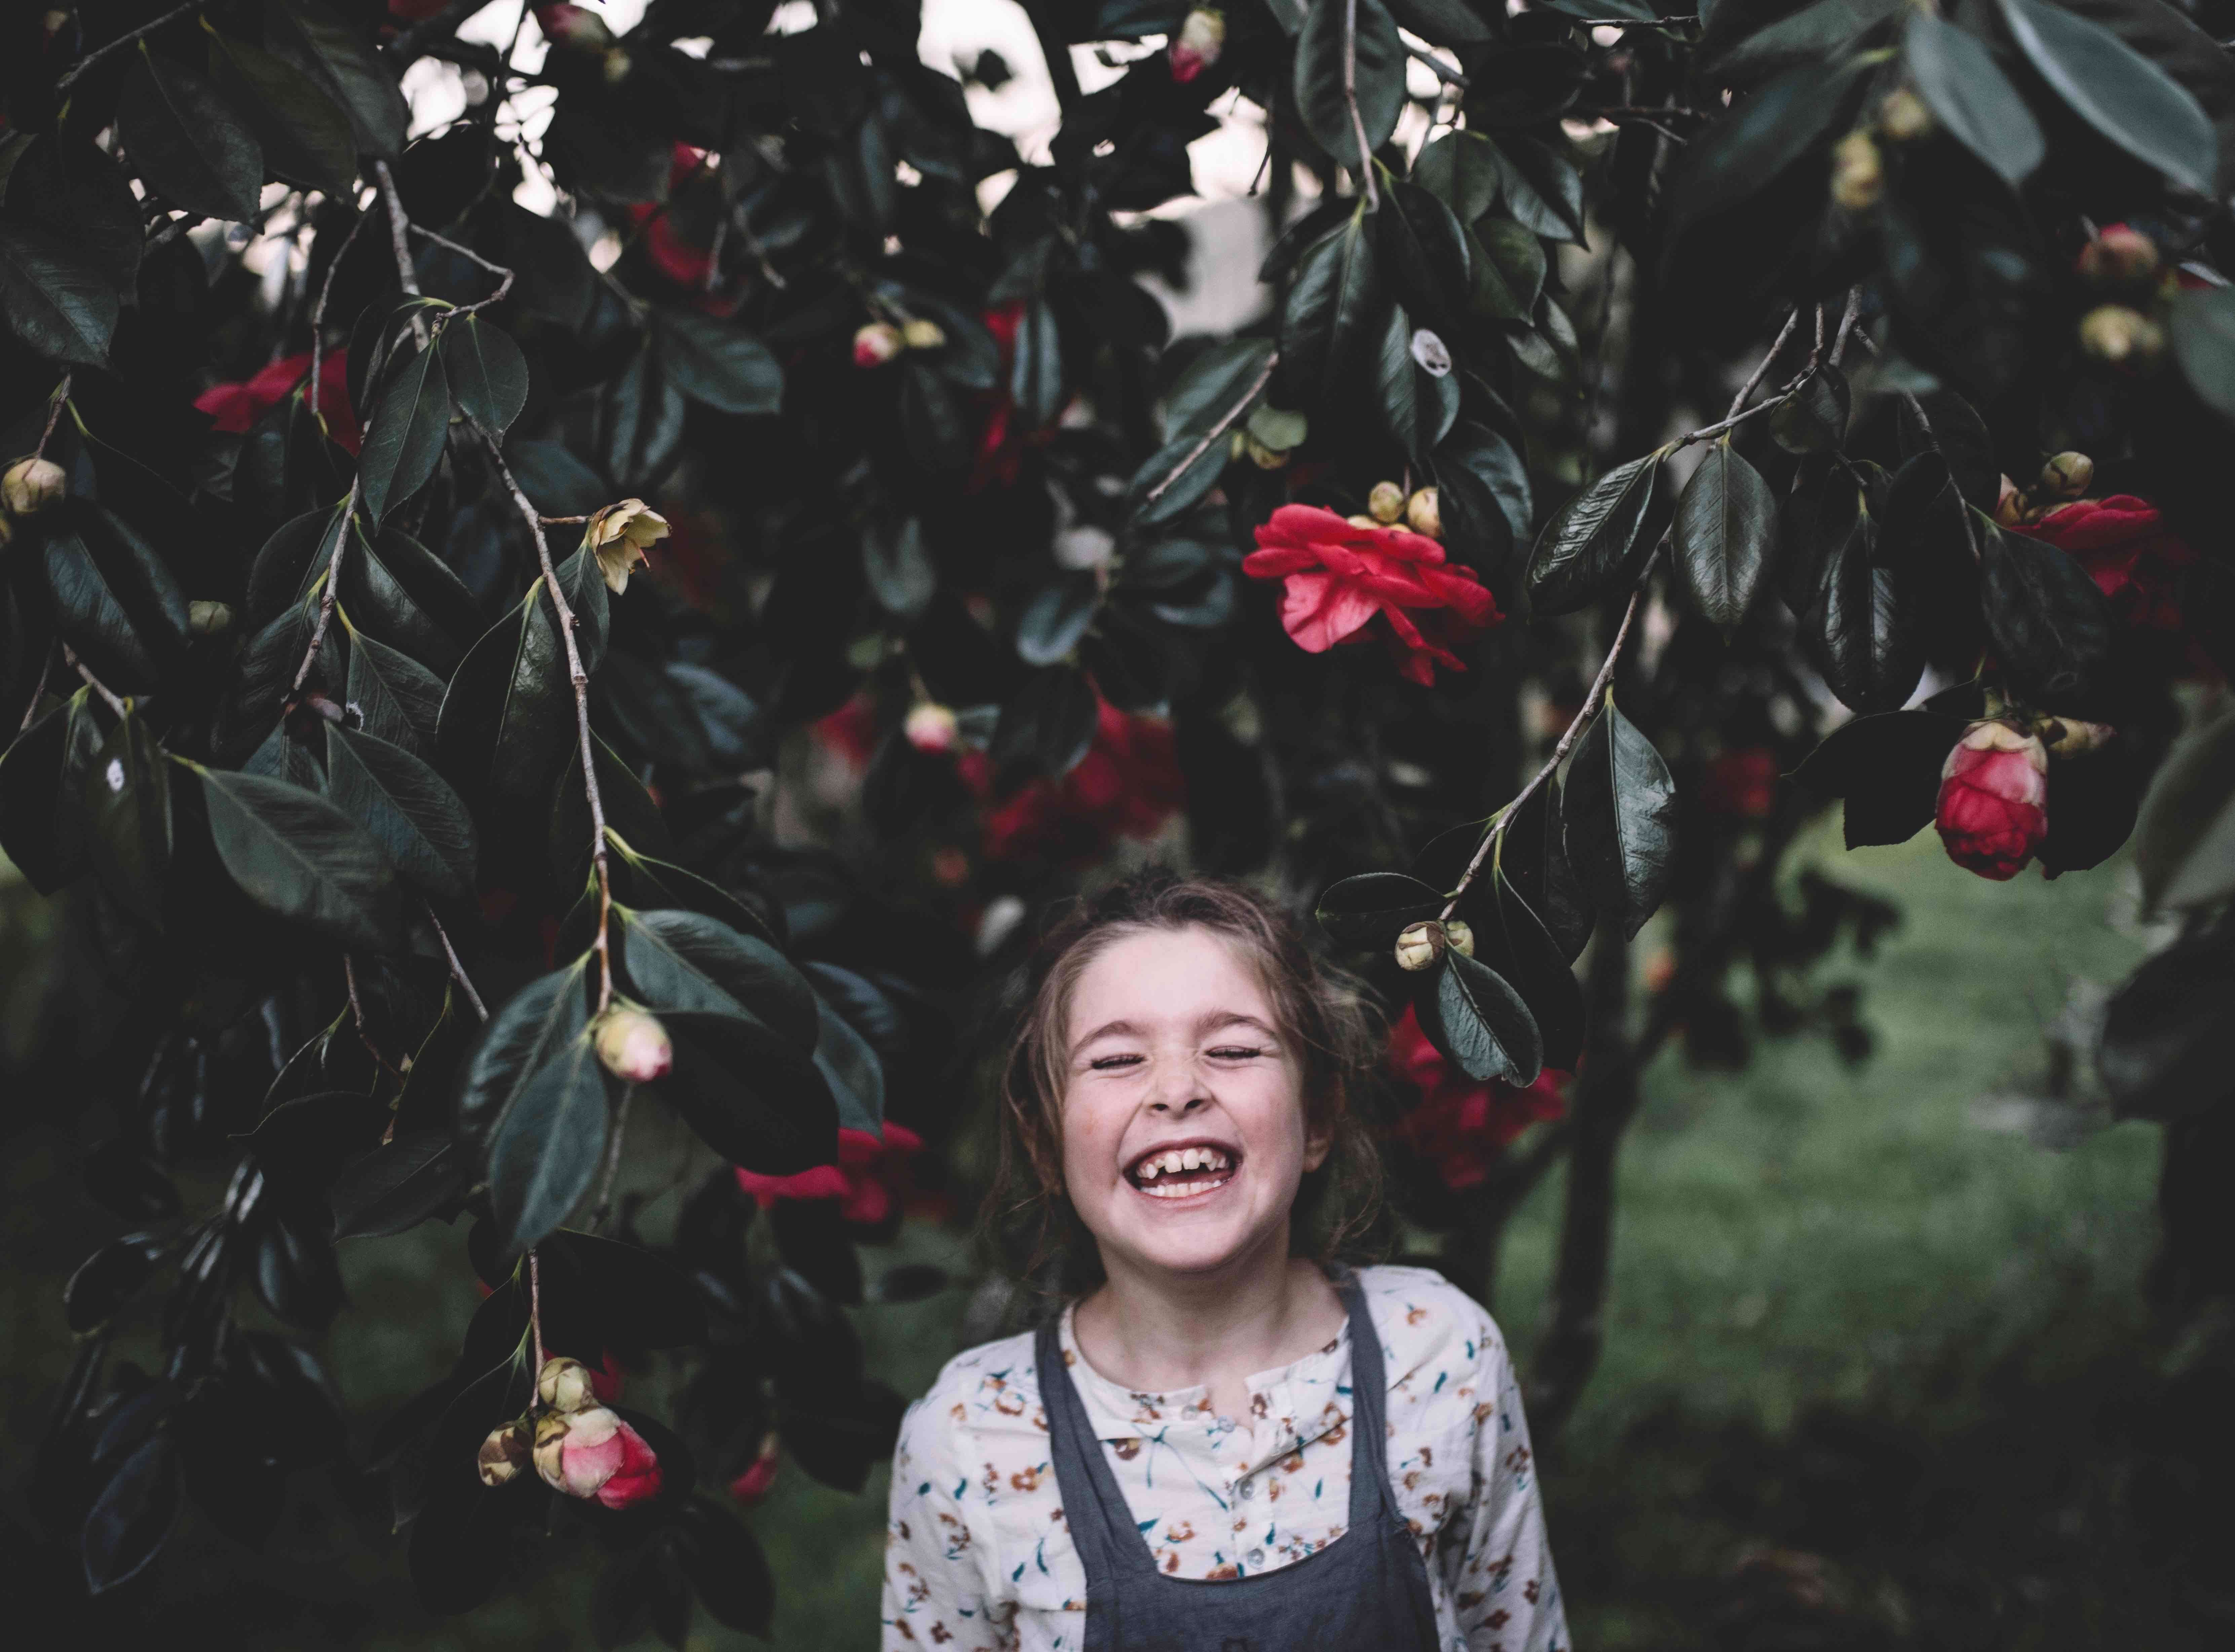 Young girl smiling with eyes closed under a flowering tree